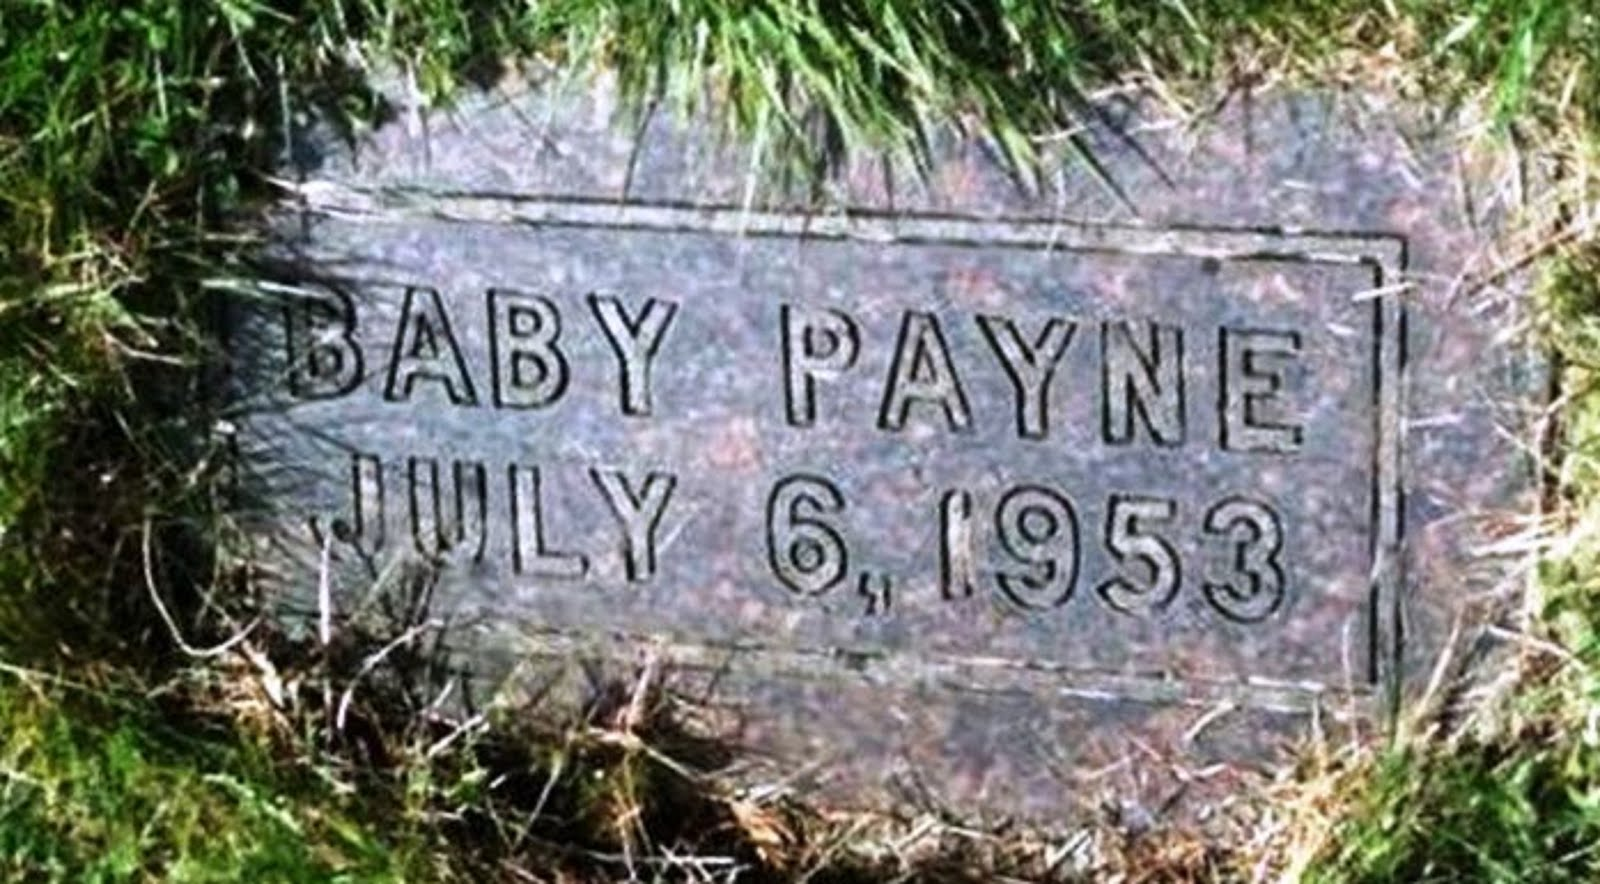 MY INFANT BABY SISTER - BORN JUNE 6th AND DIED JULY 6th - WAS MURDERED BY LPN ELSIE  PAYNE